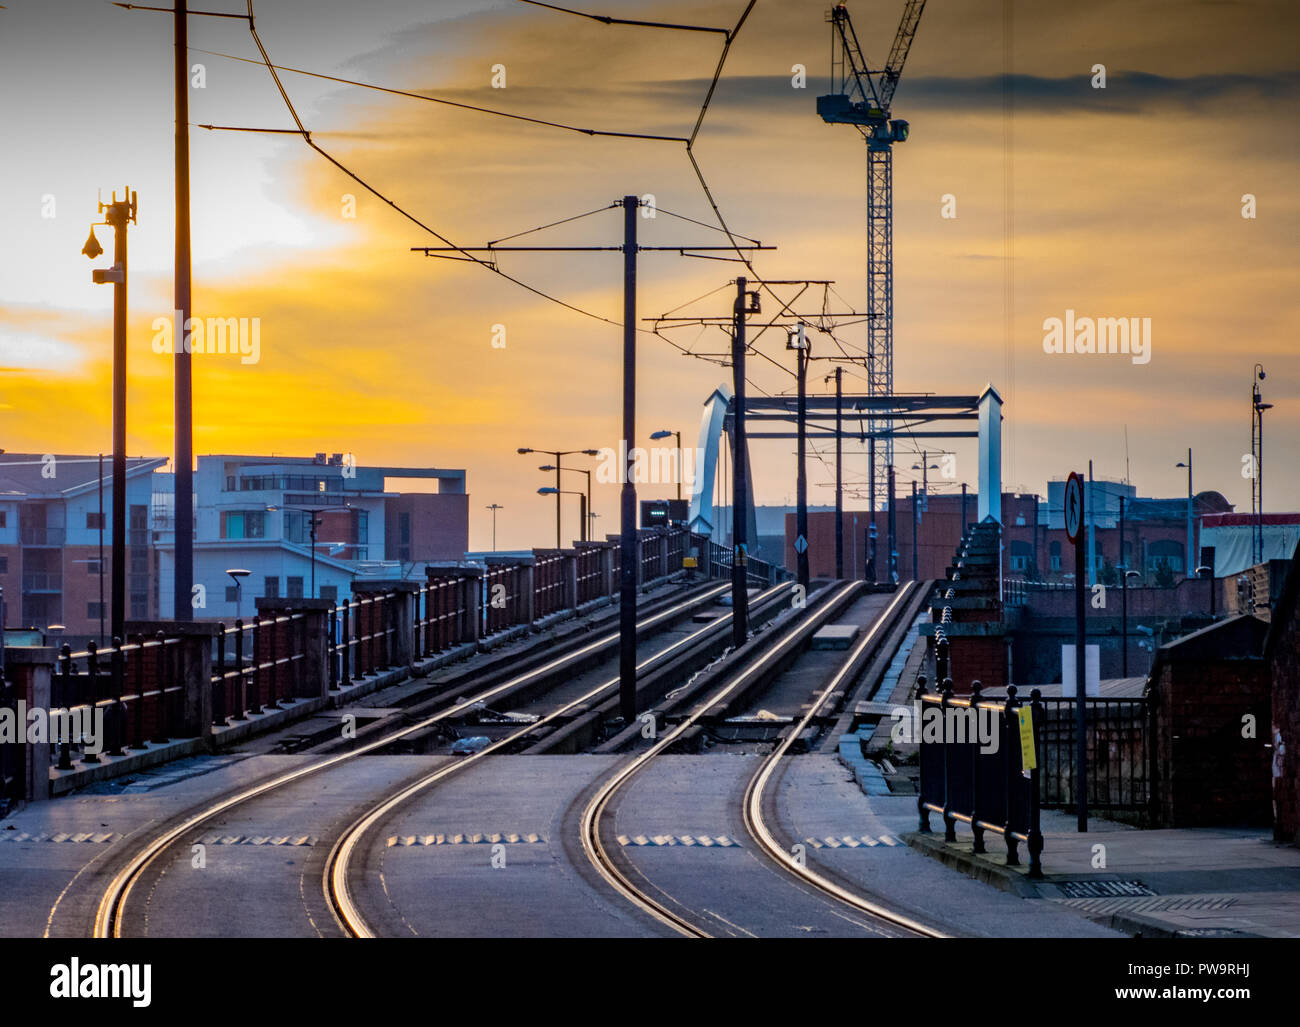 Tram and tramlines in central Manchester, UK, with setting sun and clouds - Stock Image